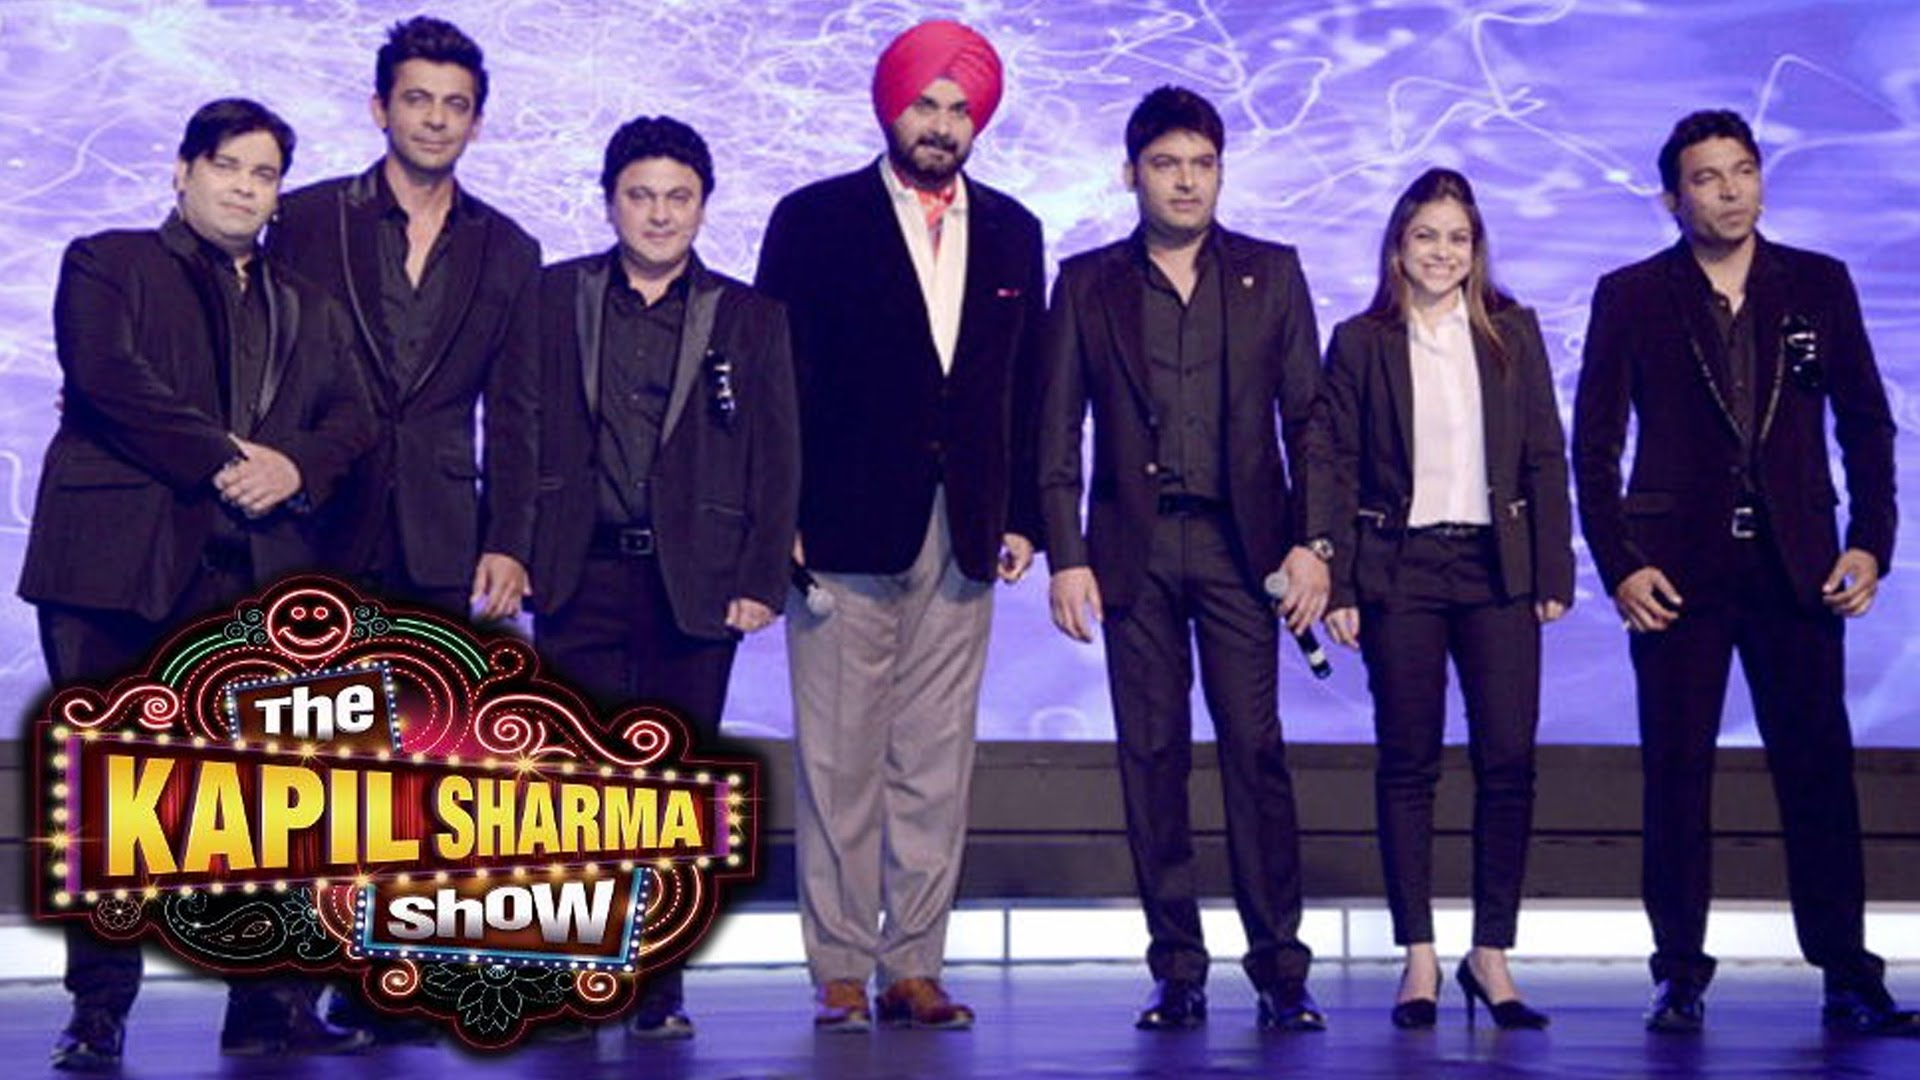 Kapil Sharma Show is back in Top 5, actor Kiku  thanks fans and shares the latest TV ratings